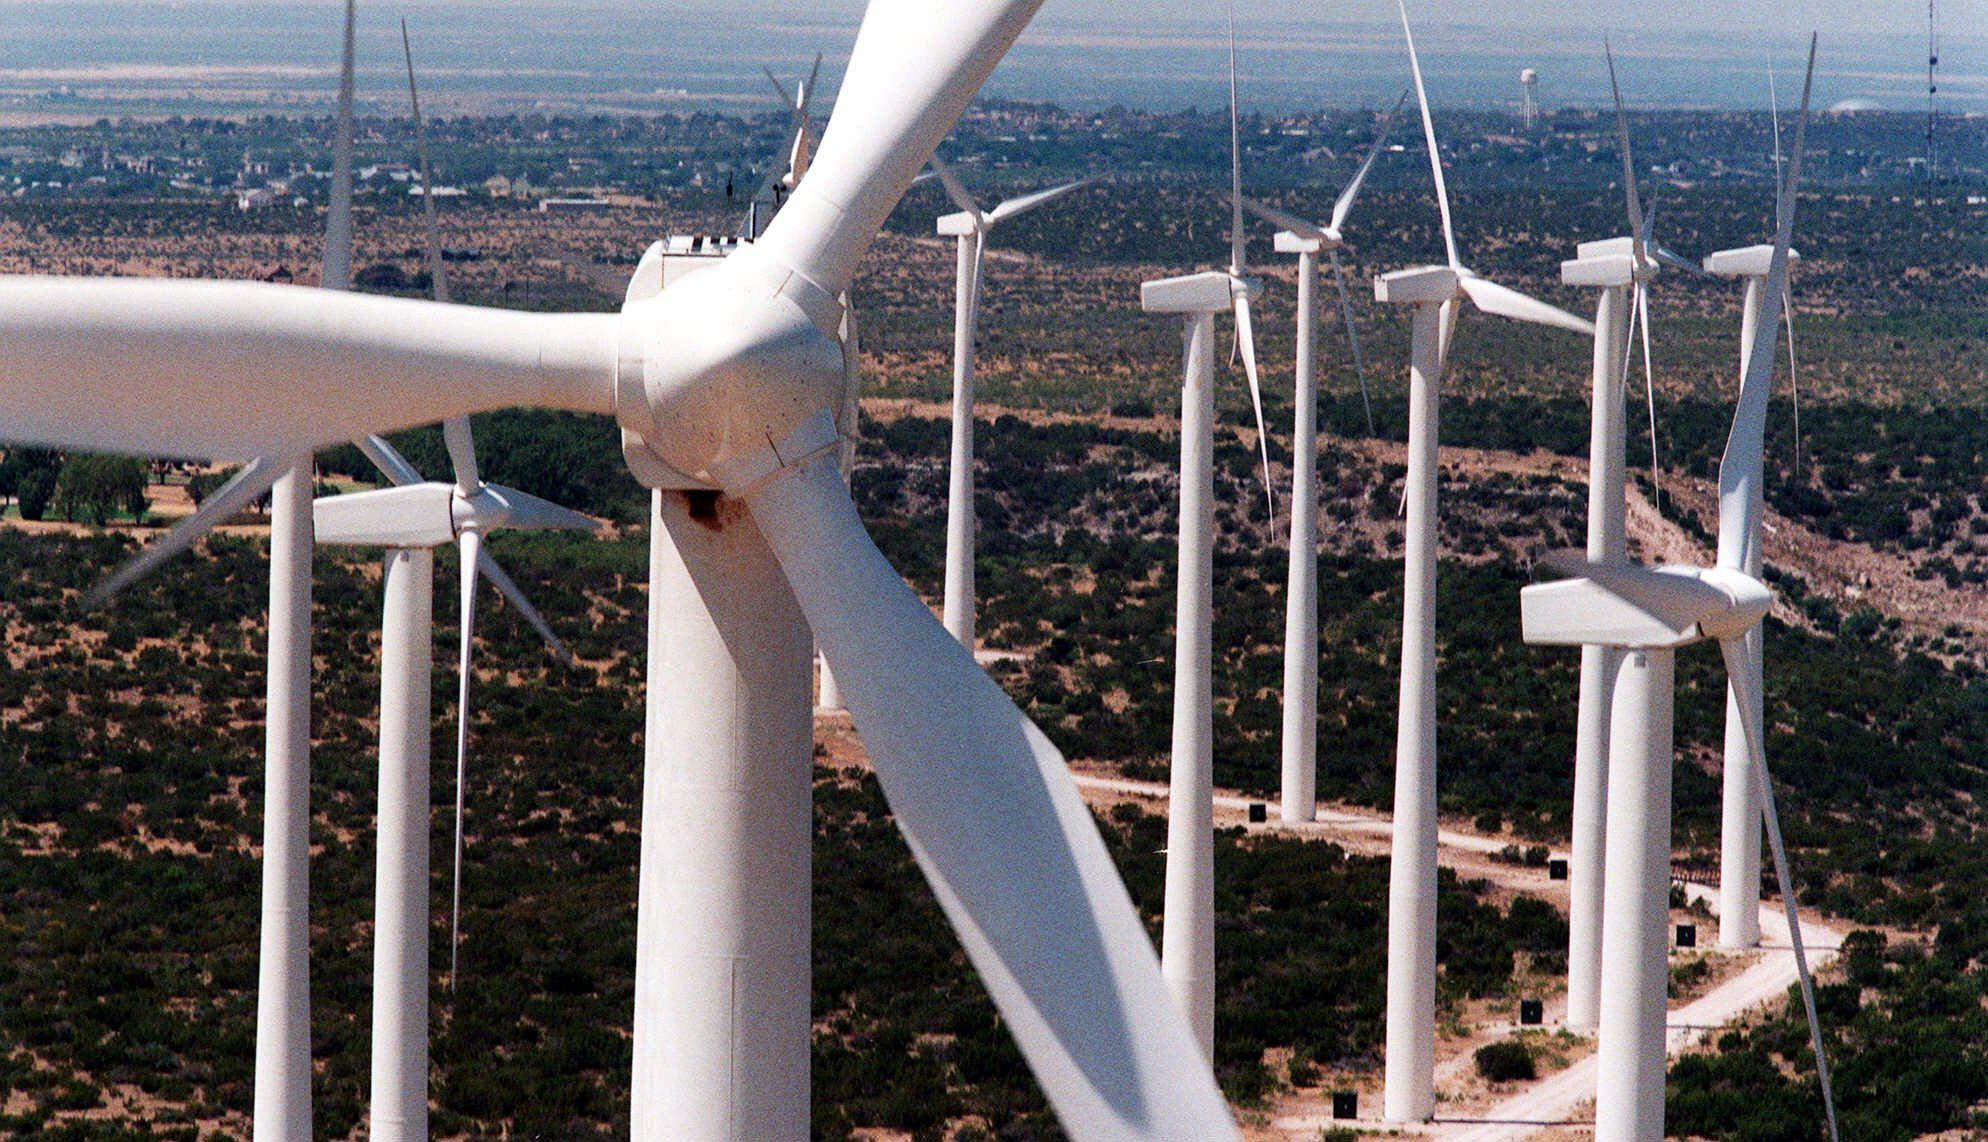 Subsidies for renewables under attack in Texas